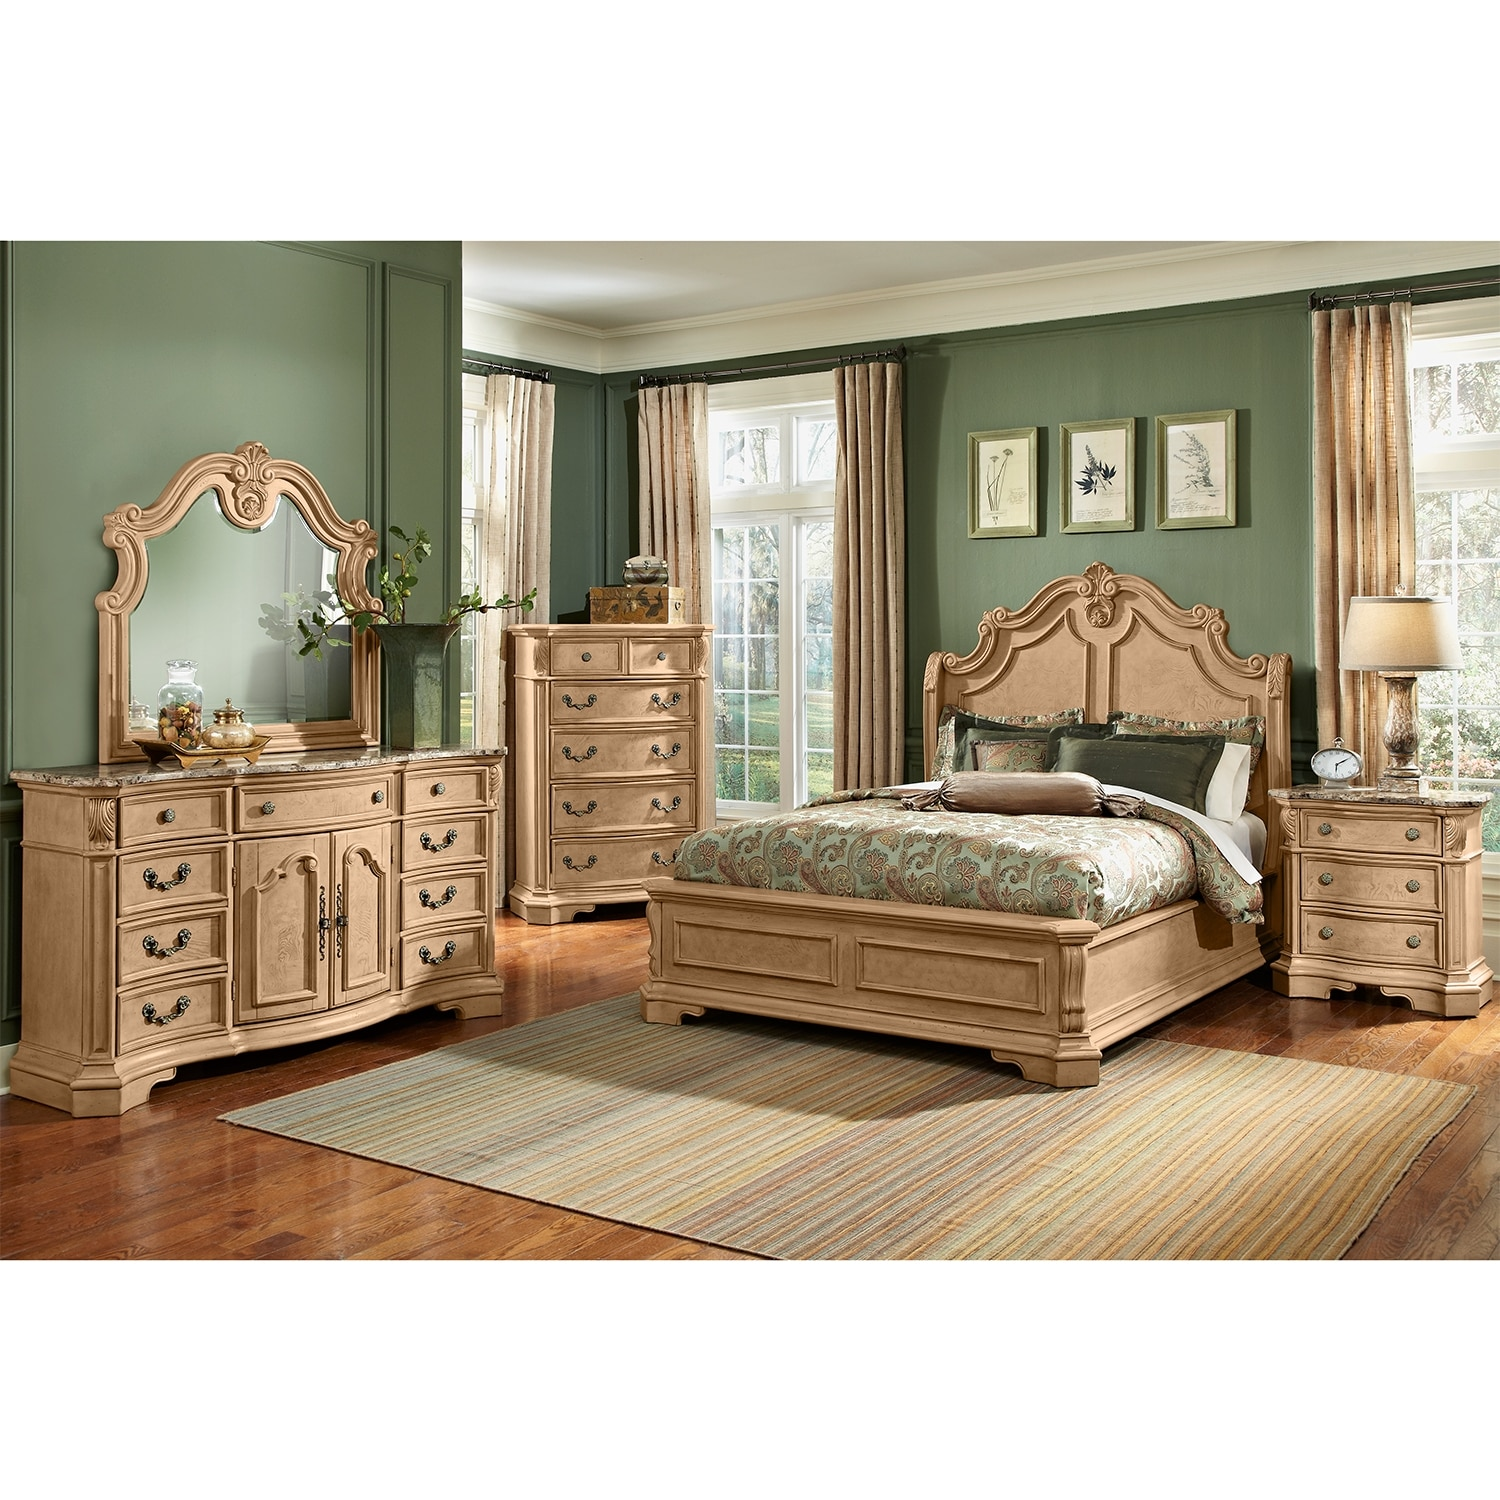 Monticello Almond Bedroom Chest